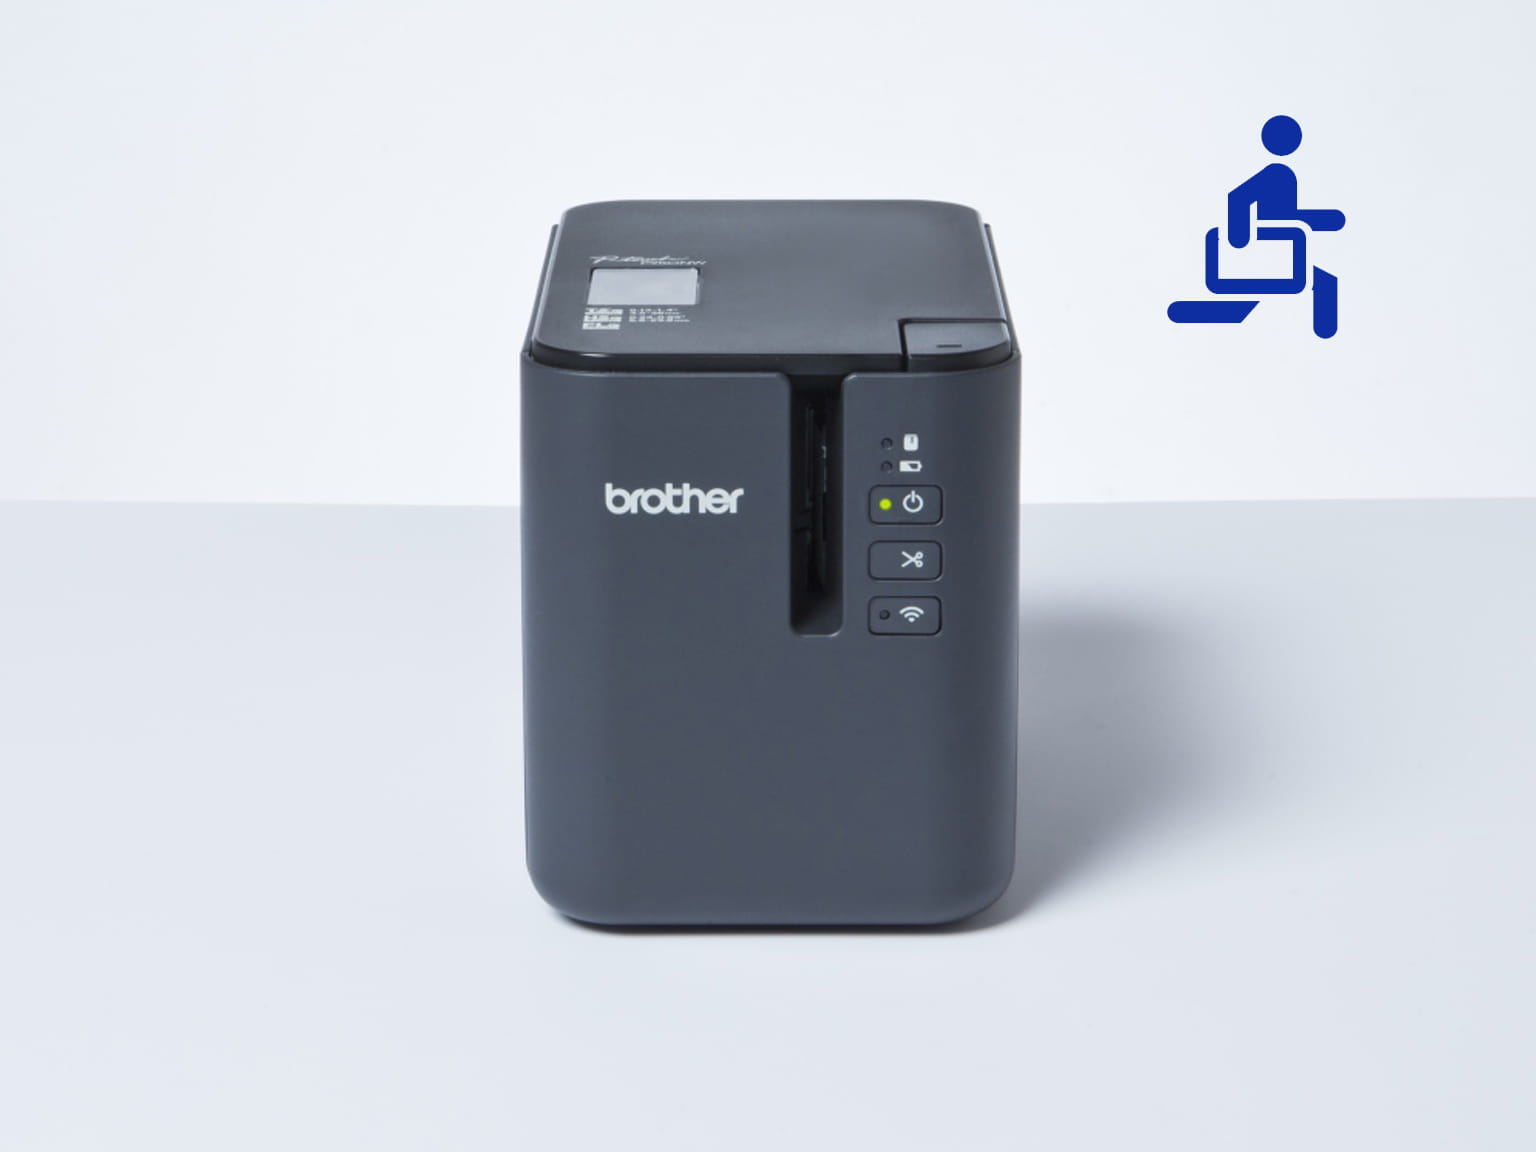 Brother mobile printer with blue mobility icon